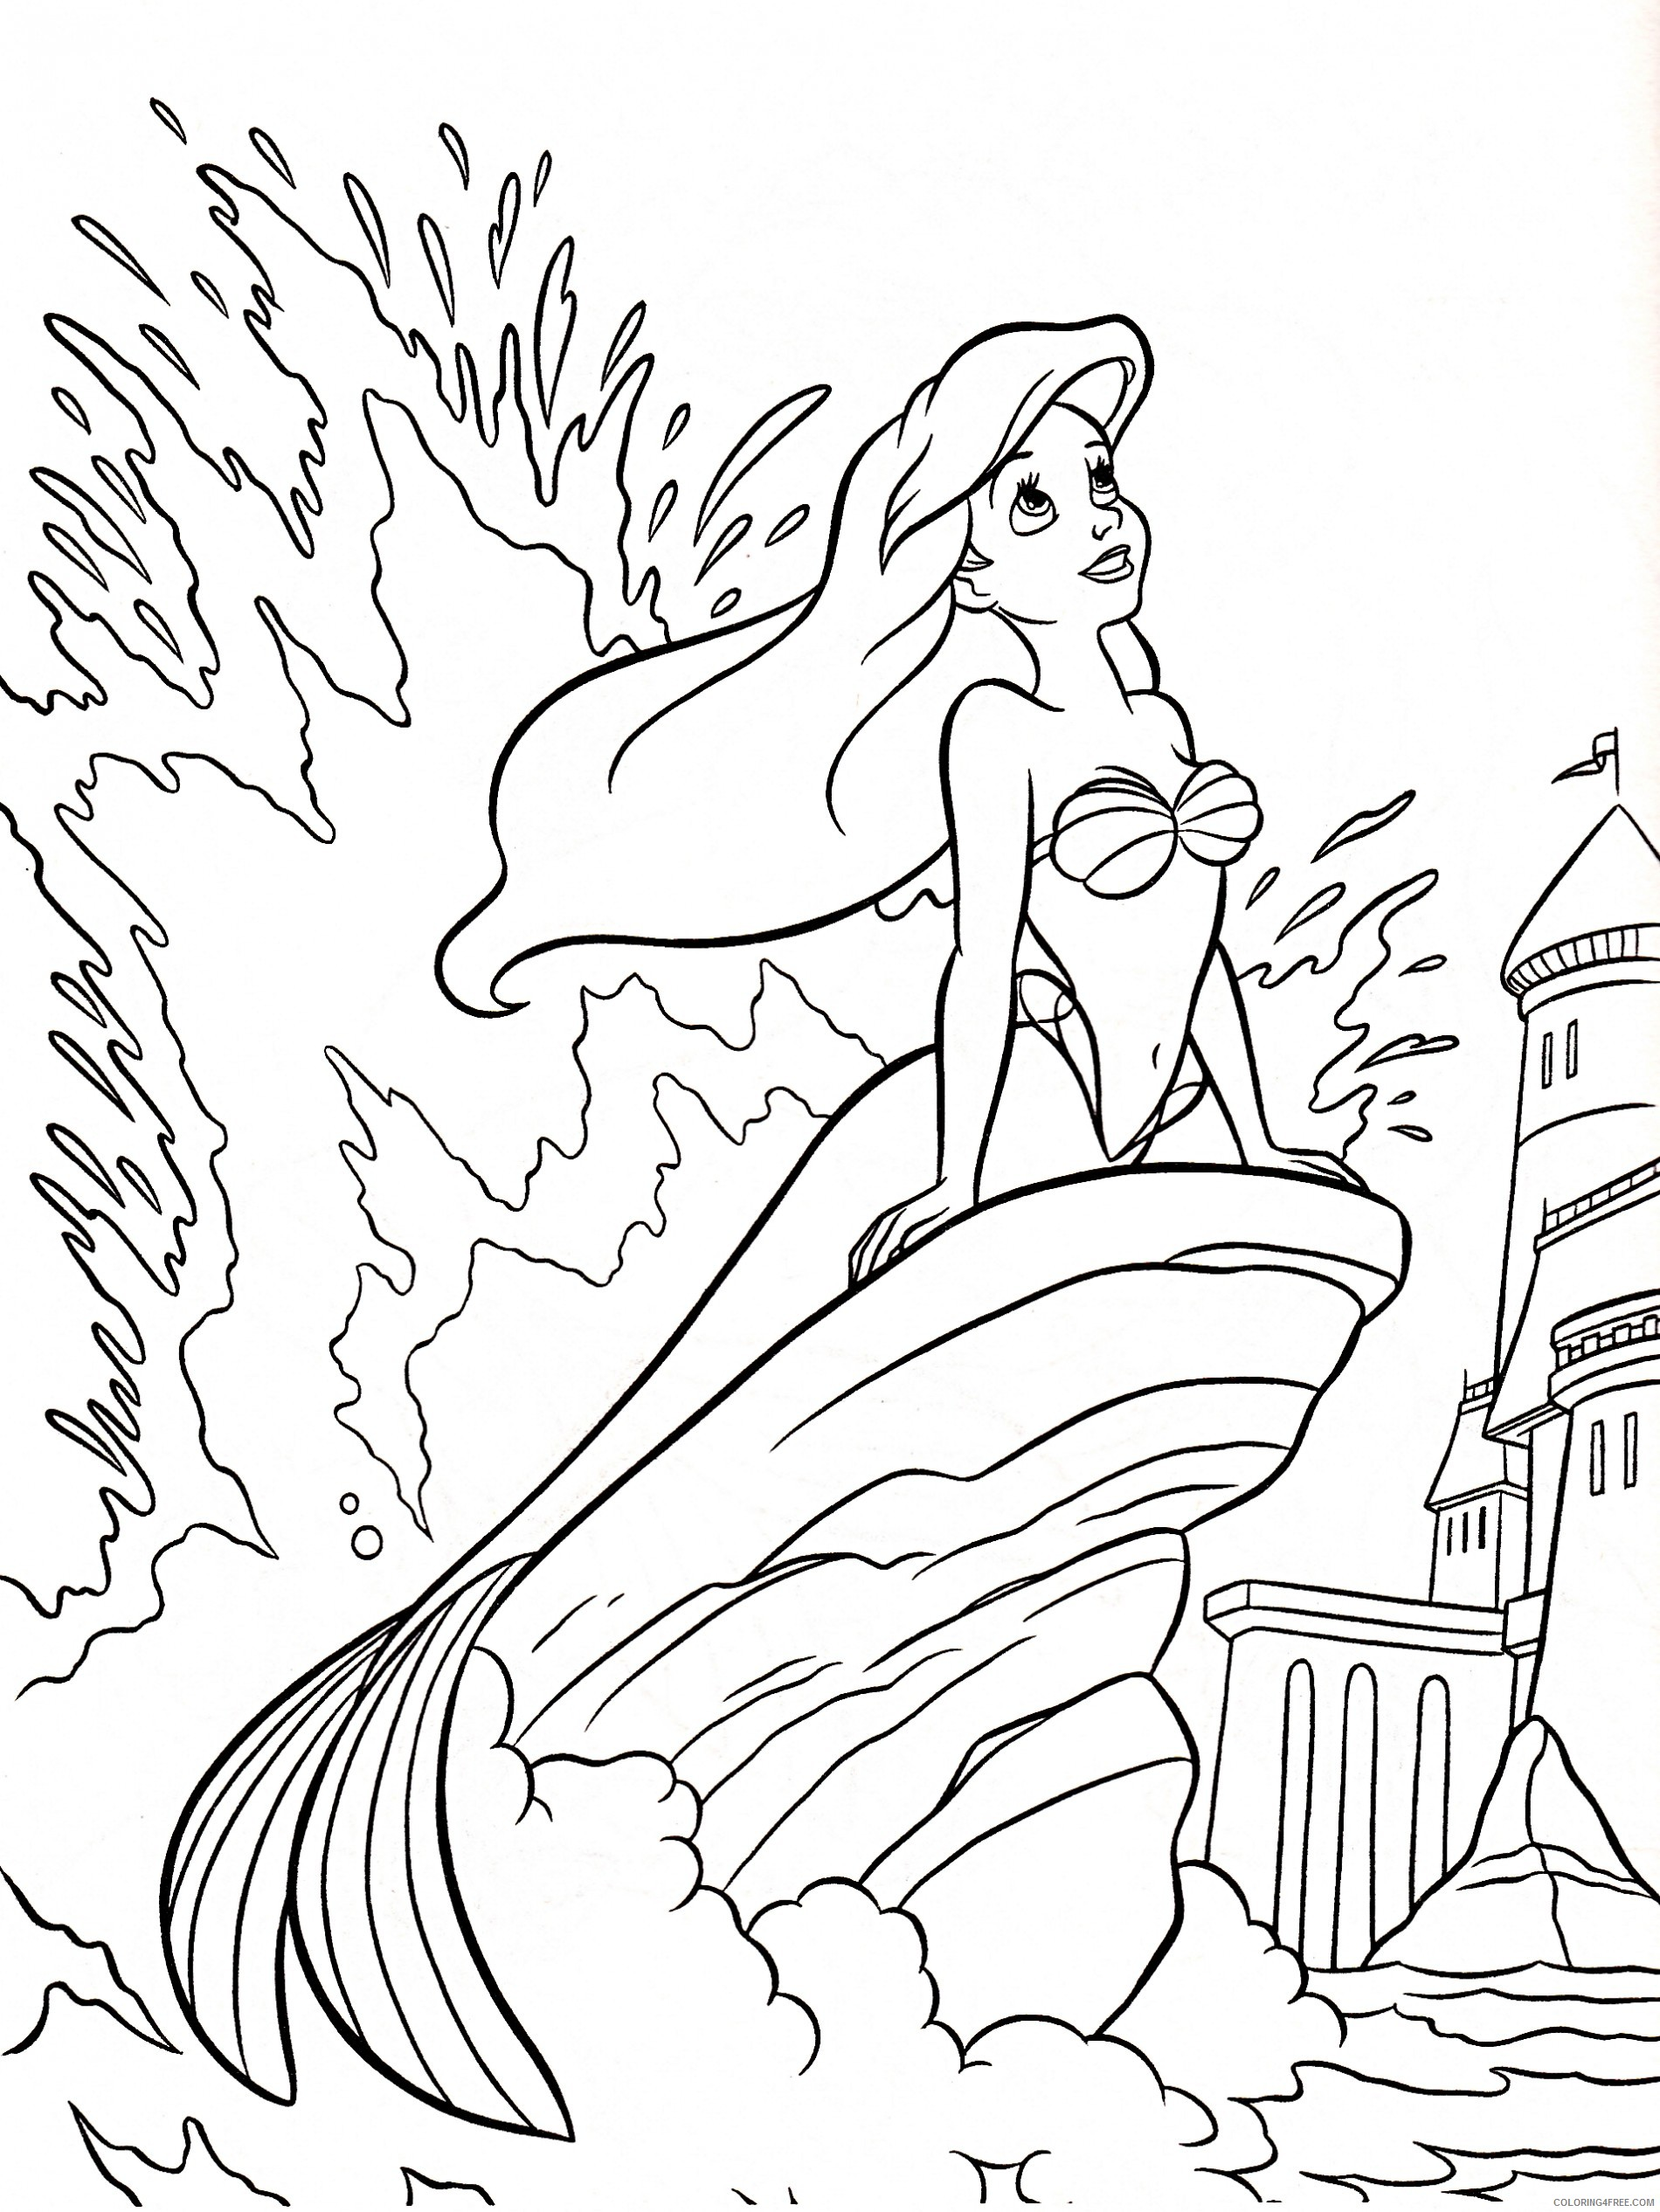 Ariel The Mermaid Coloring Pages - Coloring Home | 2532x1900